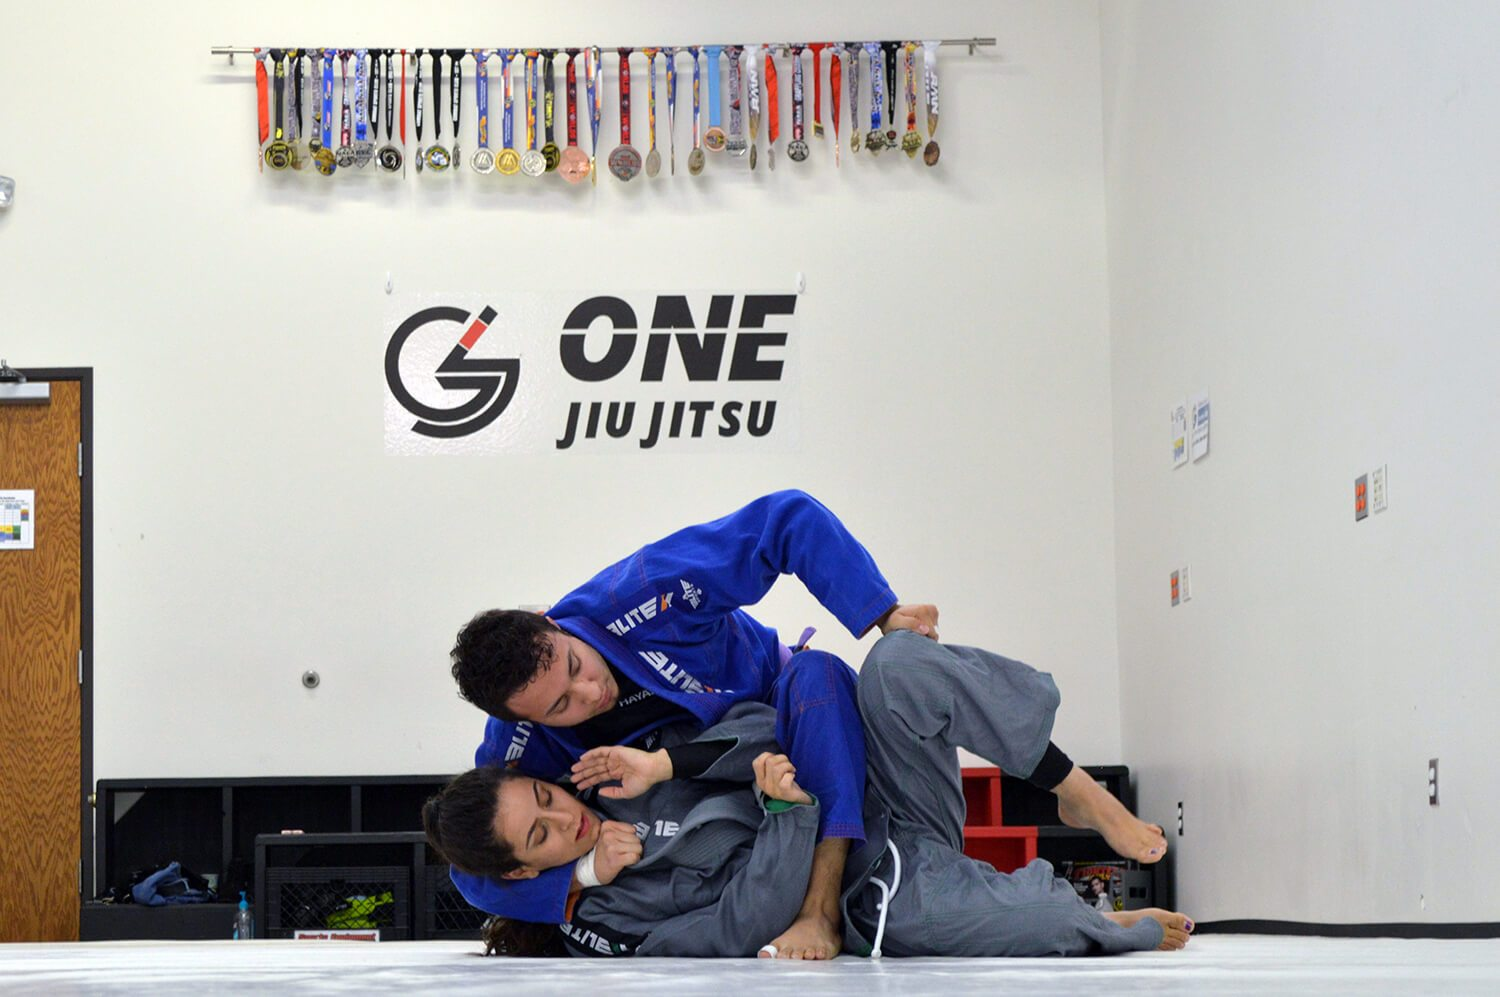 Elite-sports-Team-Elite-NO GI-Andria-Torrez-image12.jpeg